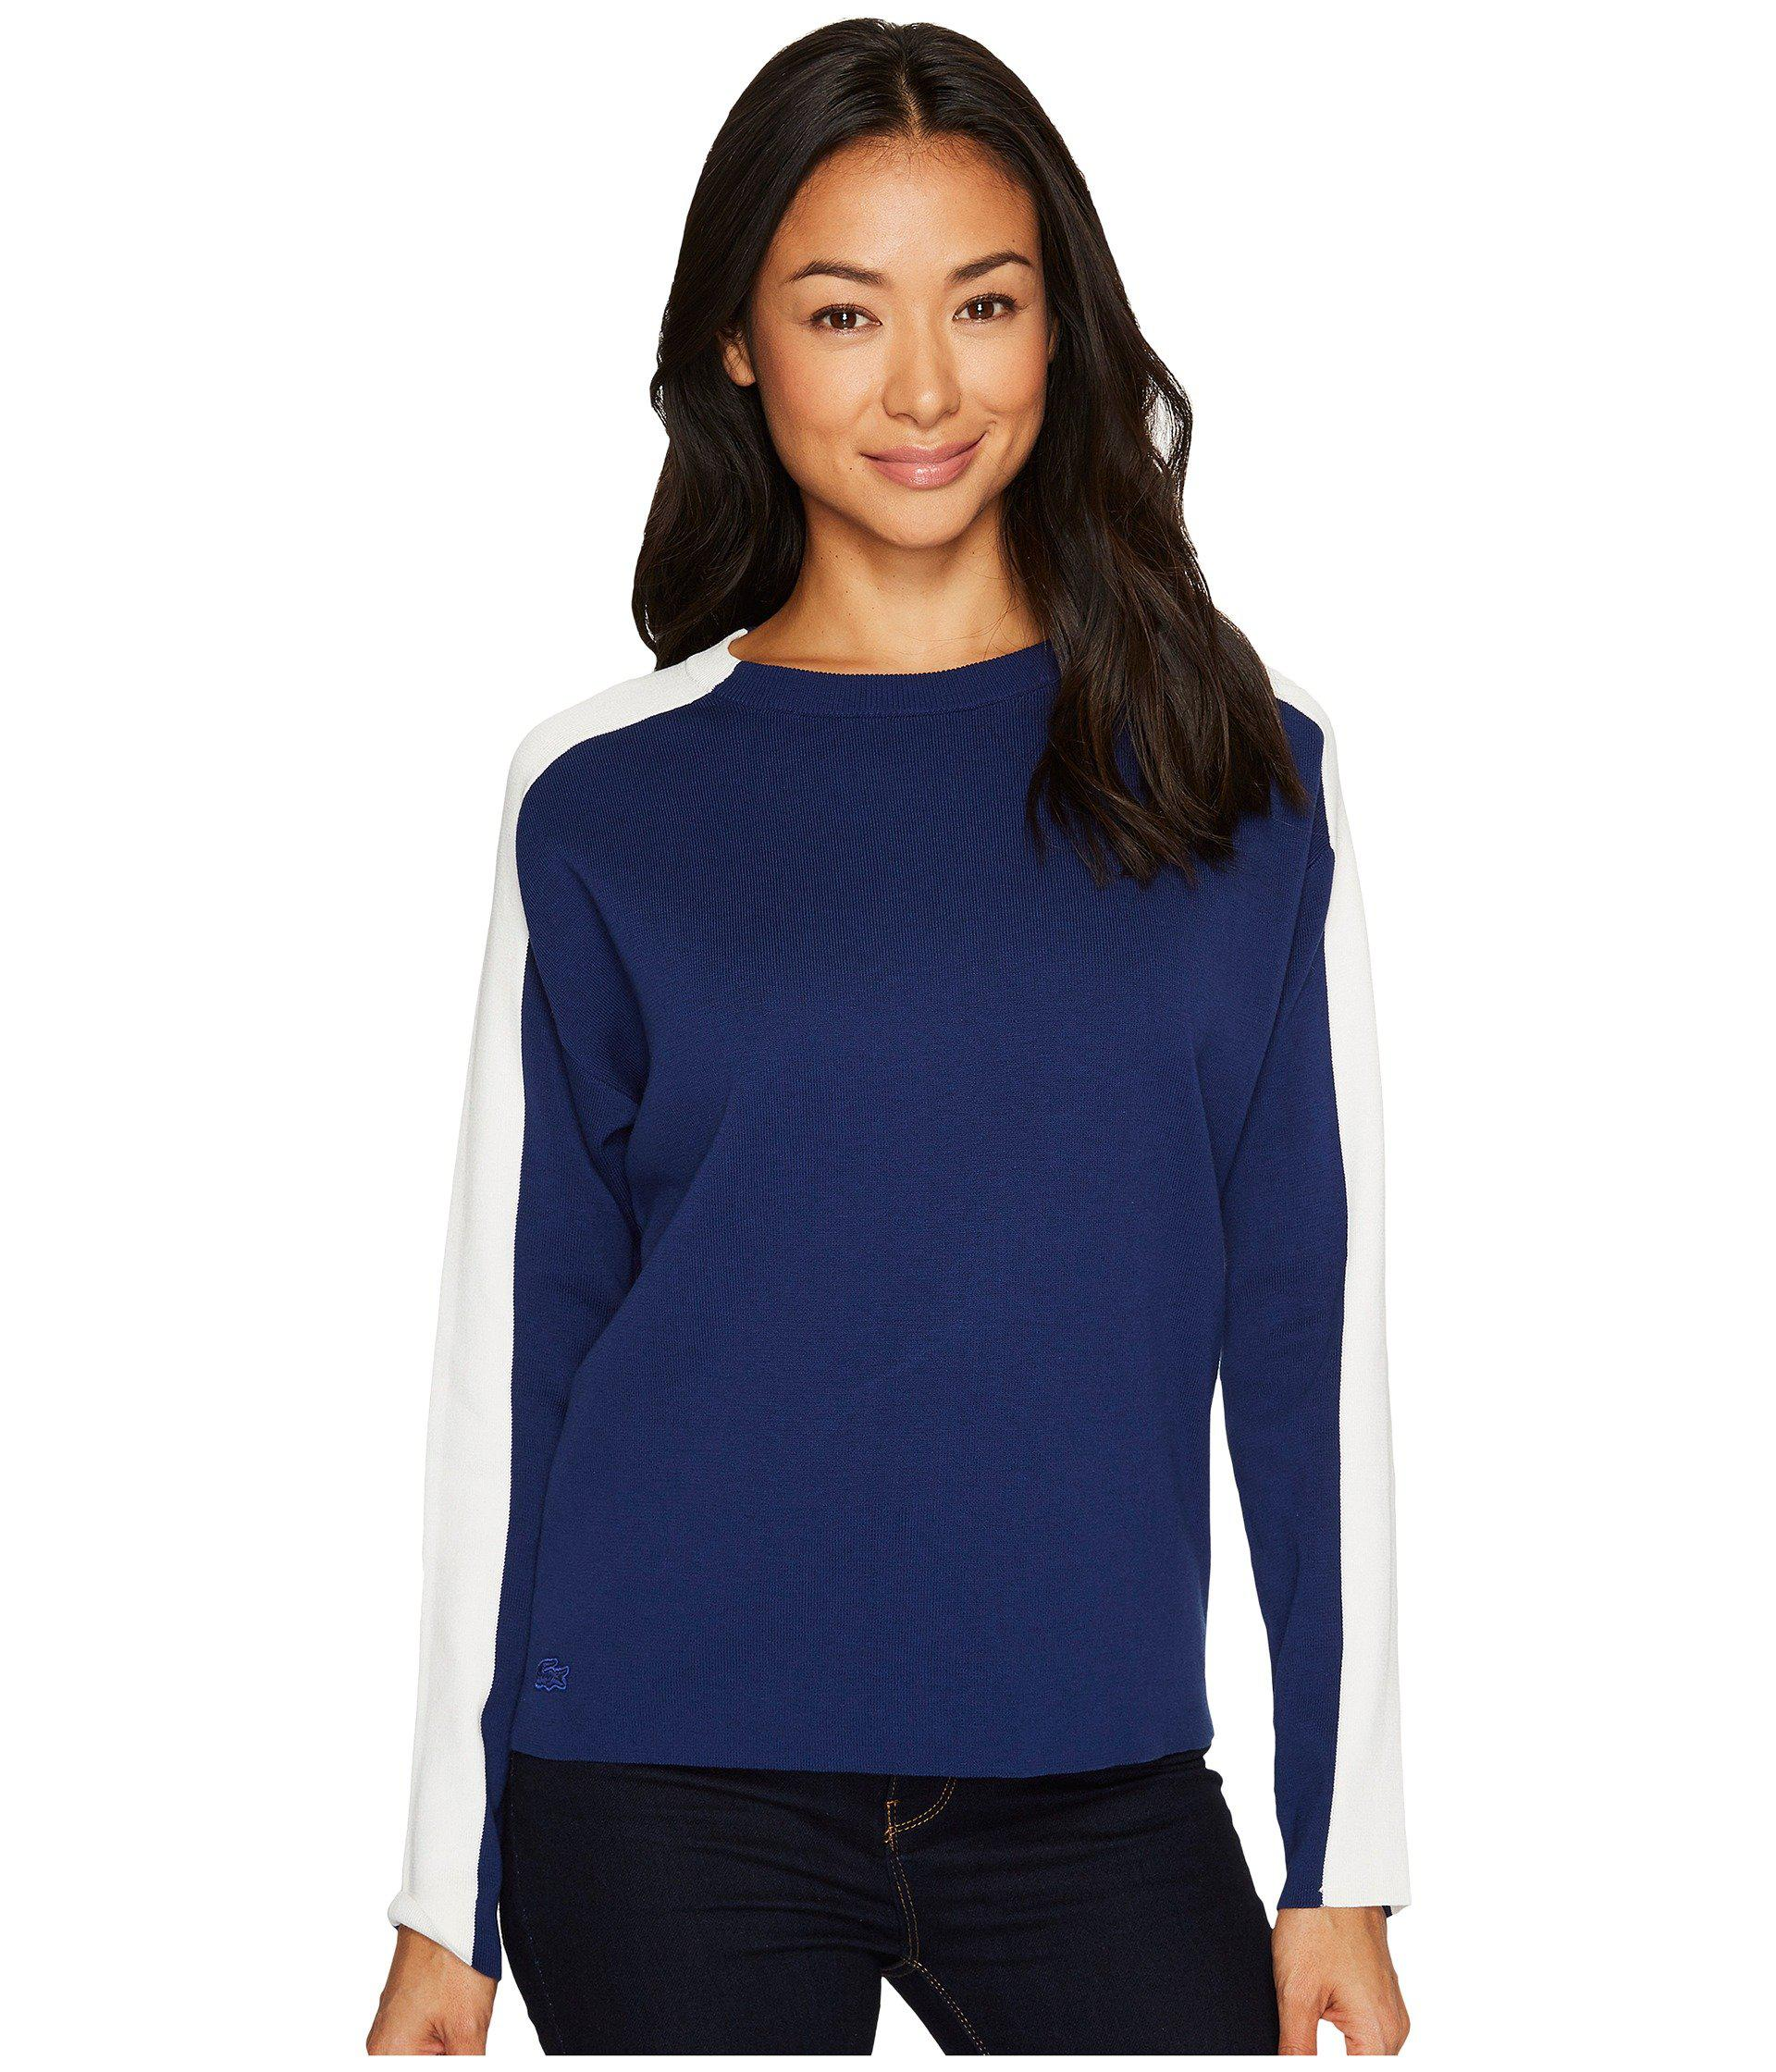 Lacoste Womens Colorblock Double Face Jacquard Cotton//Wool Sweater